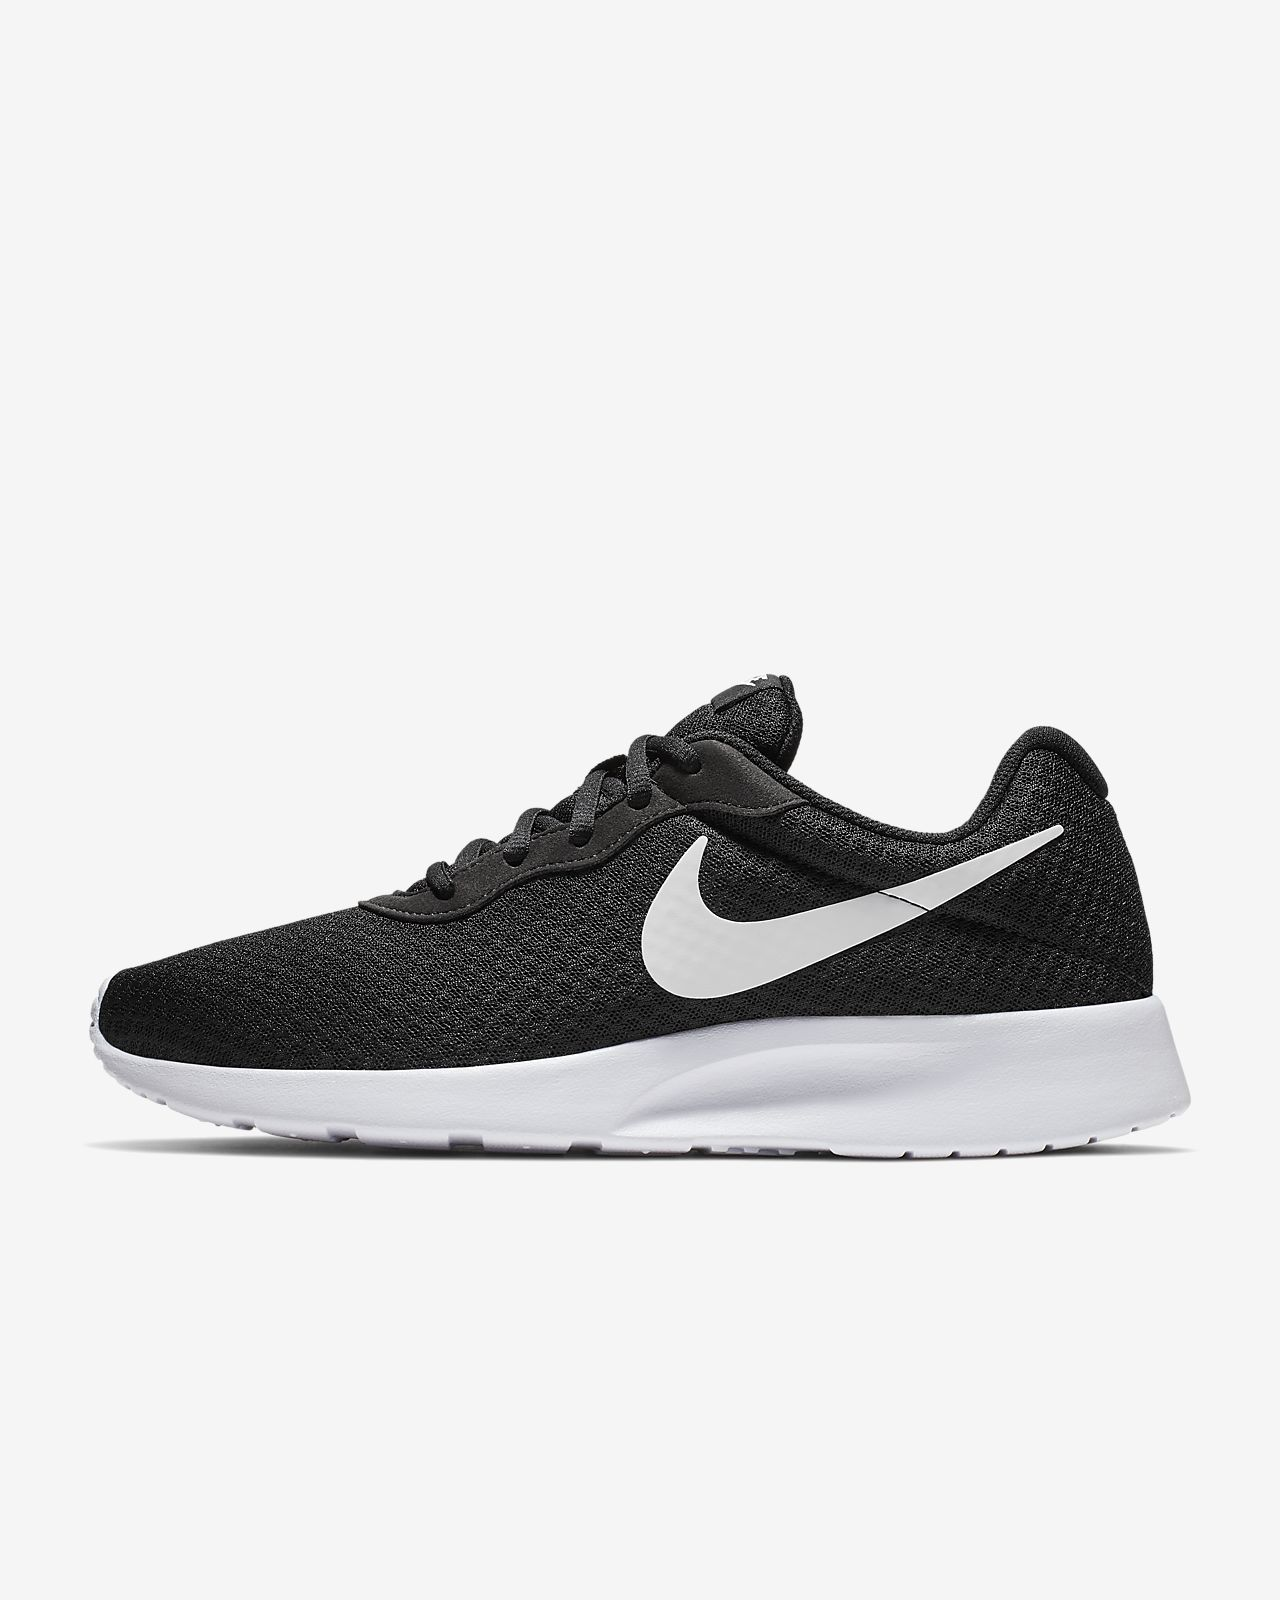 promo code aa3d8 13c84 Low Resolution Nike Tanjun Mens Shoe Nike Tanjun Mens Shoe